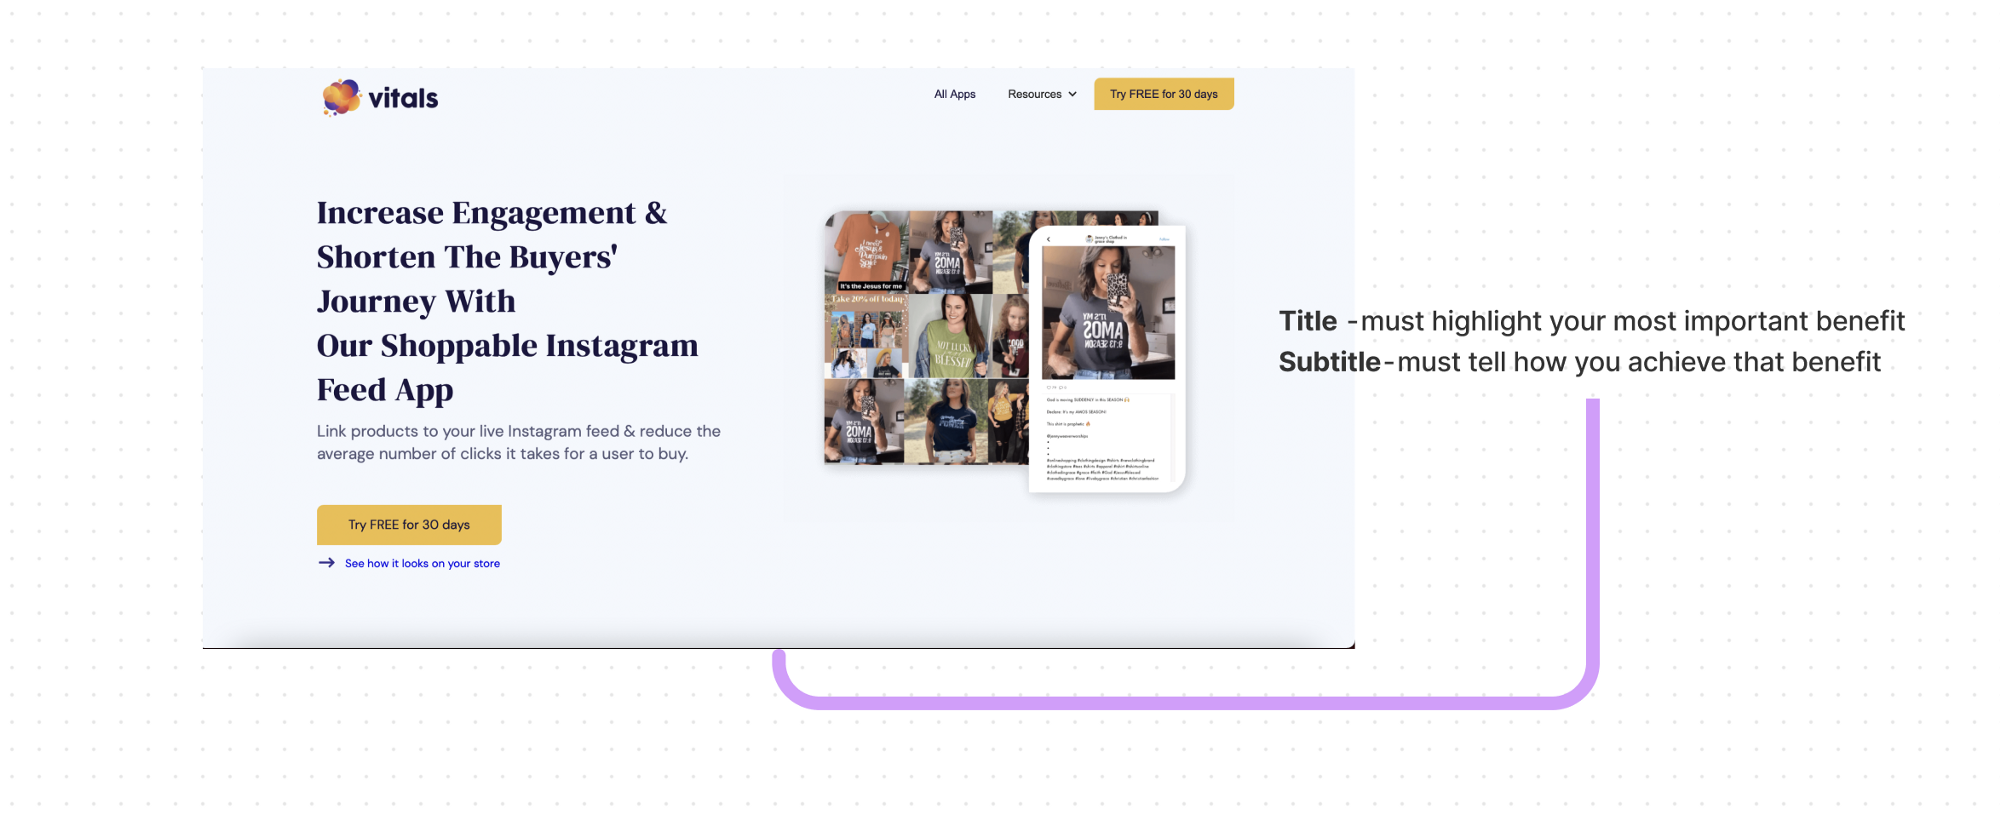 Landing page copy for Shopify app to convert more visitors.